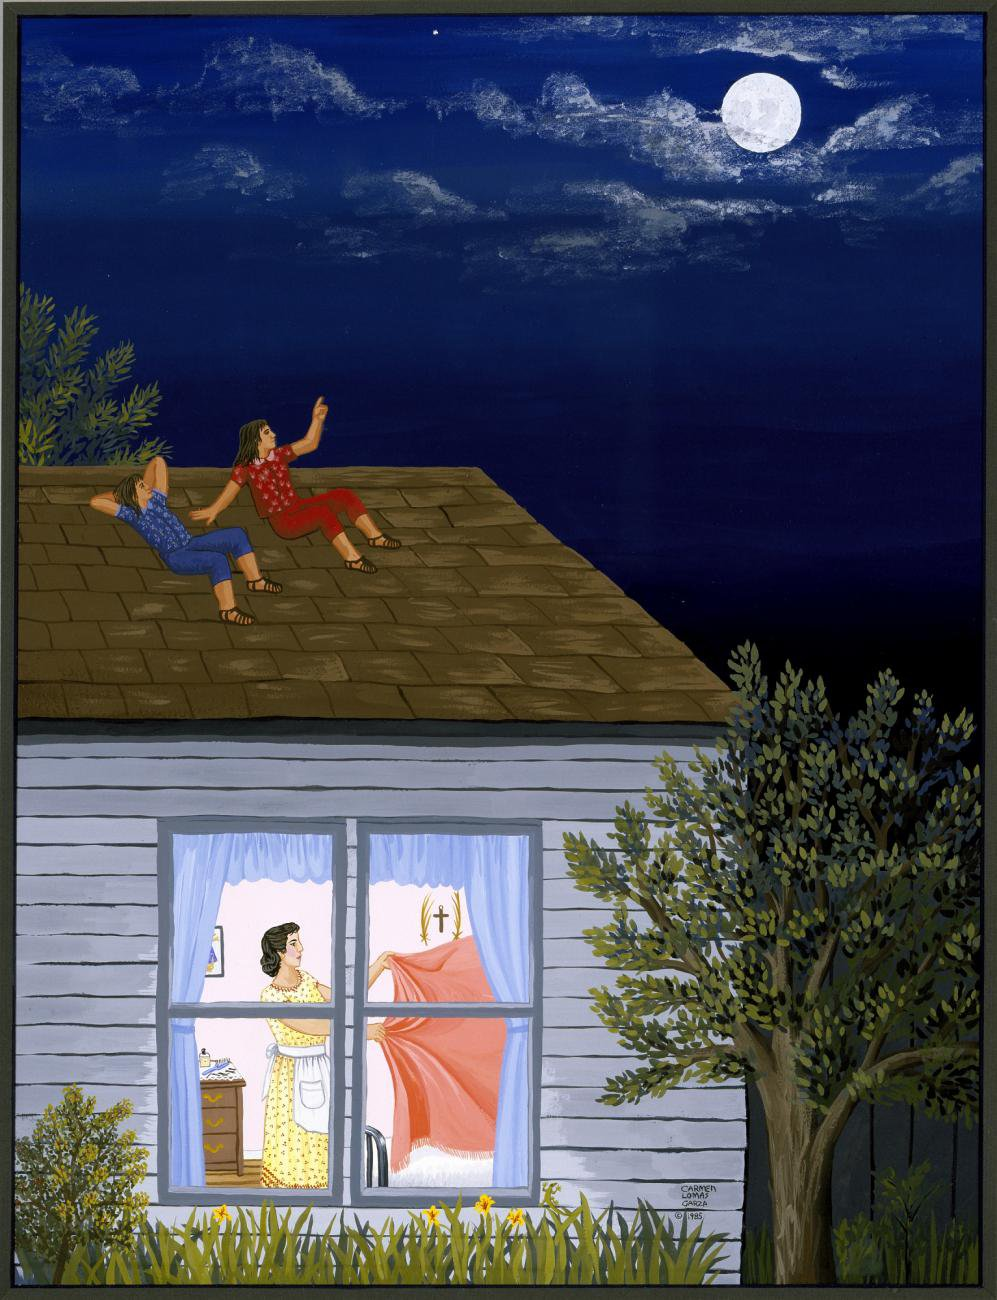 Artwork of a house at night. You can see a woman doing laundry through the window and two children are sitting on the roof, looking at the night's sky.